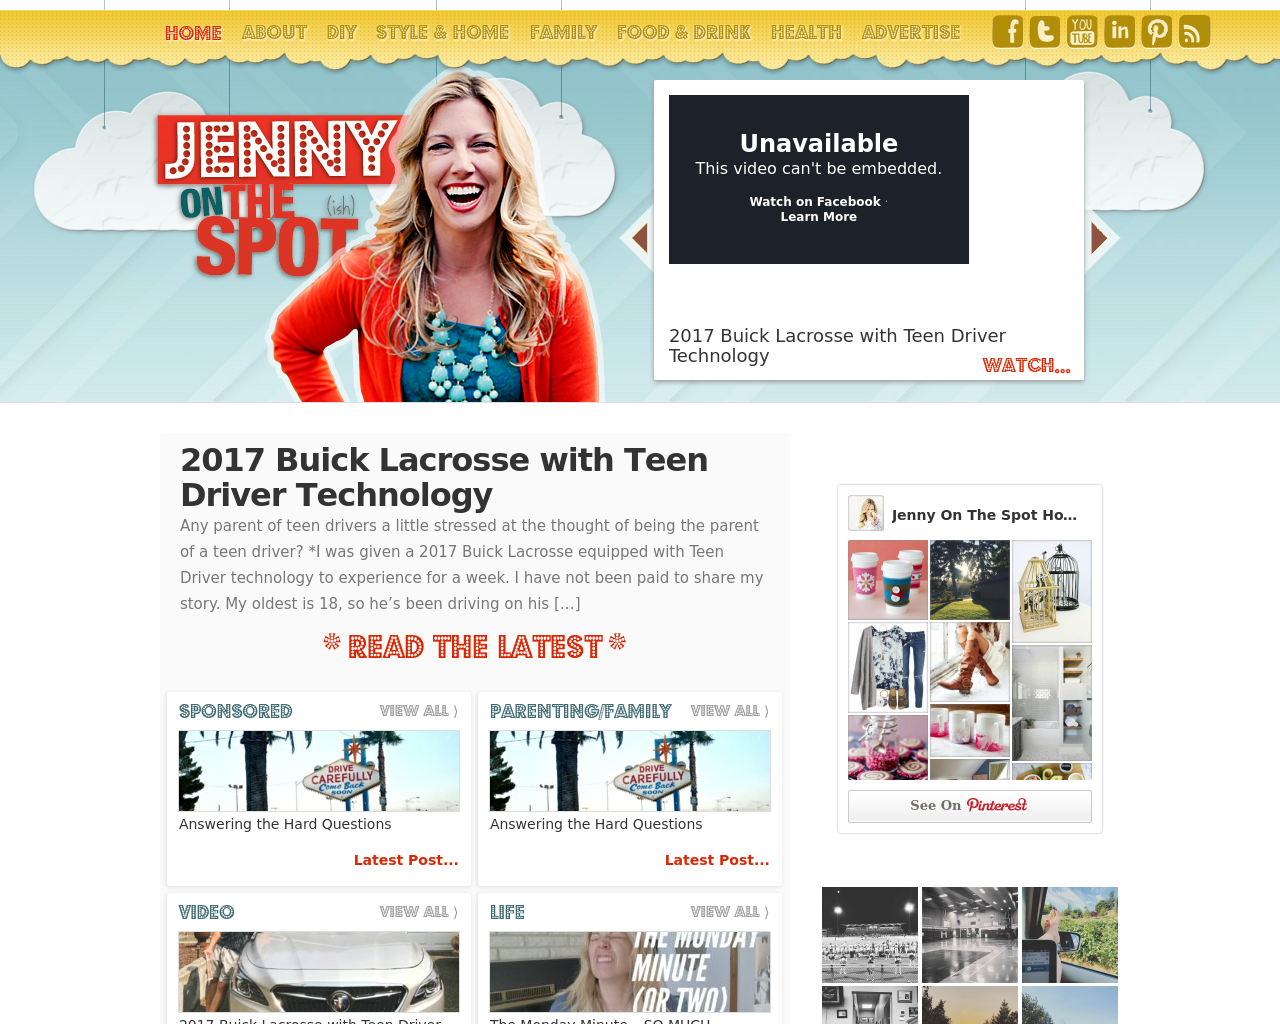 JENNY-ON-THE-SPOT-Advertising-Reviews-Pricing